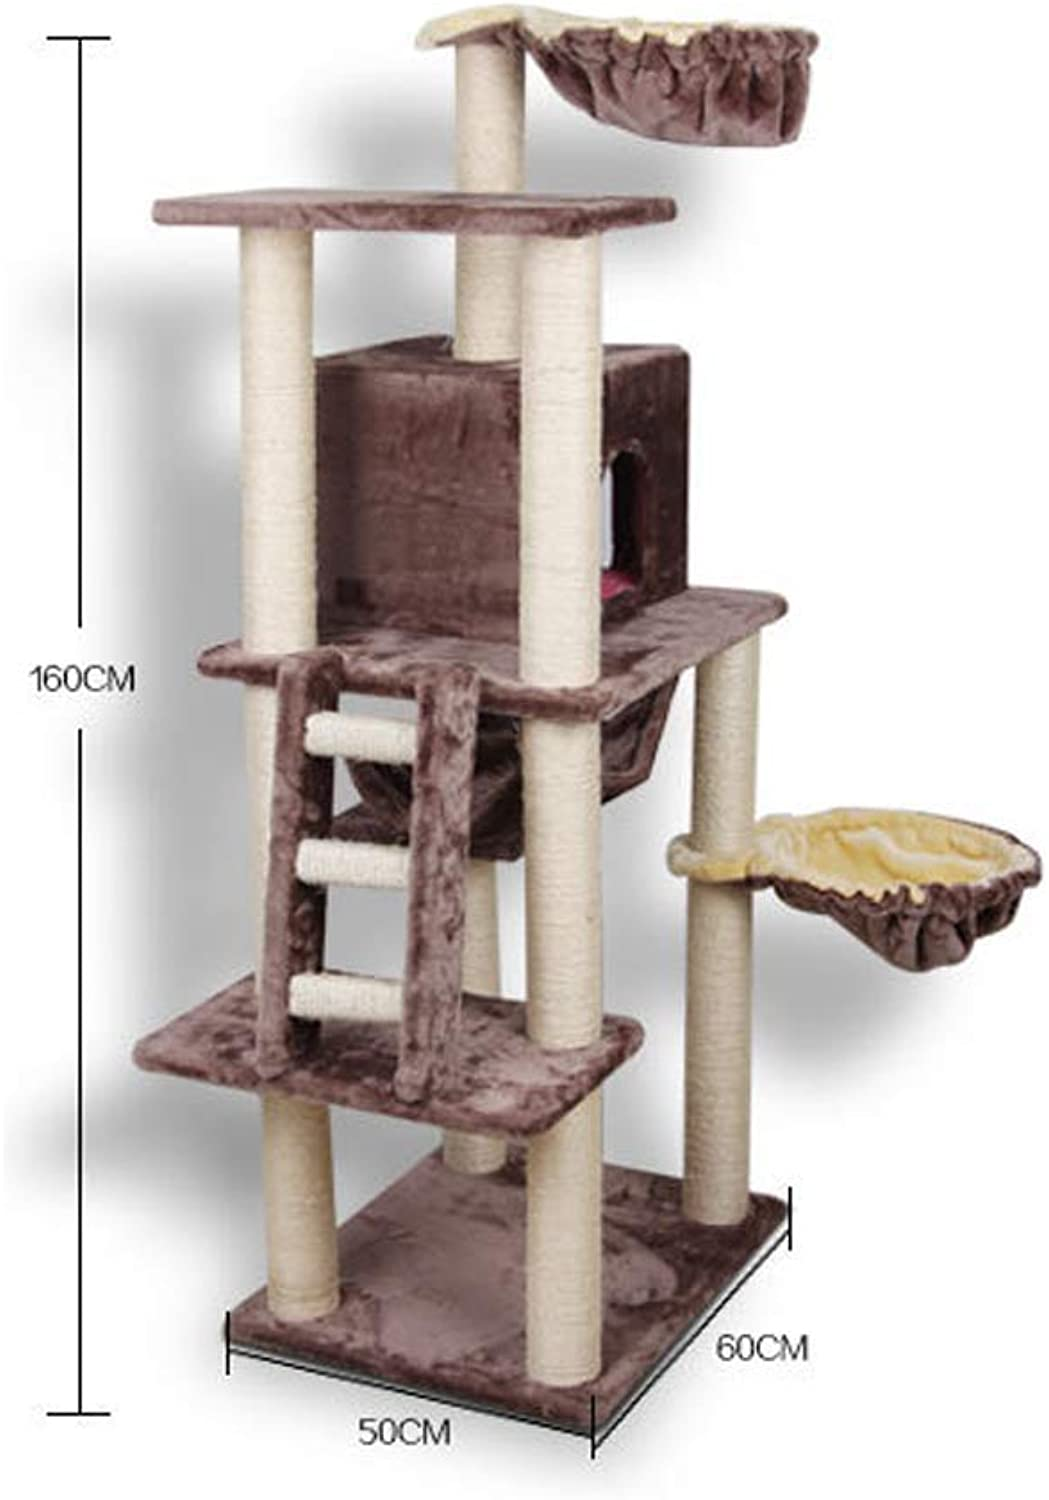 Axiba Play Towers Trees for Cats Large cat climbing frame cat nest cat Tree Cat Scratch plate cat grab column cat jumping cat toy 50cm 60cm  140cm